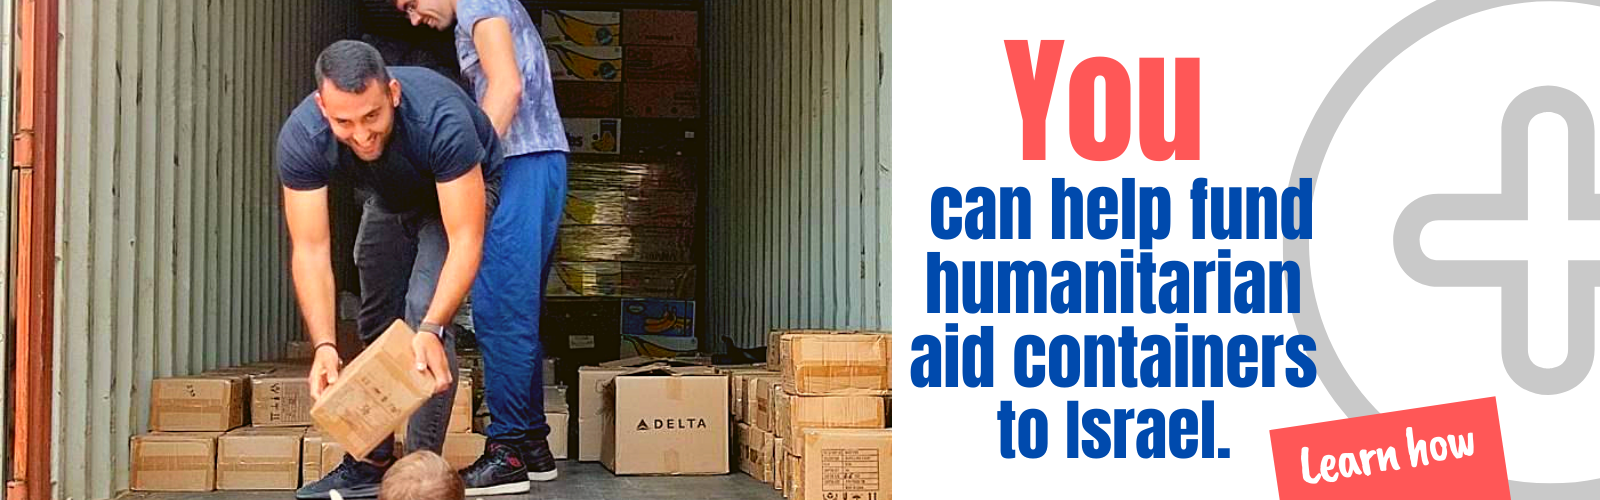 Aid Container Funding